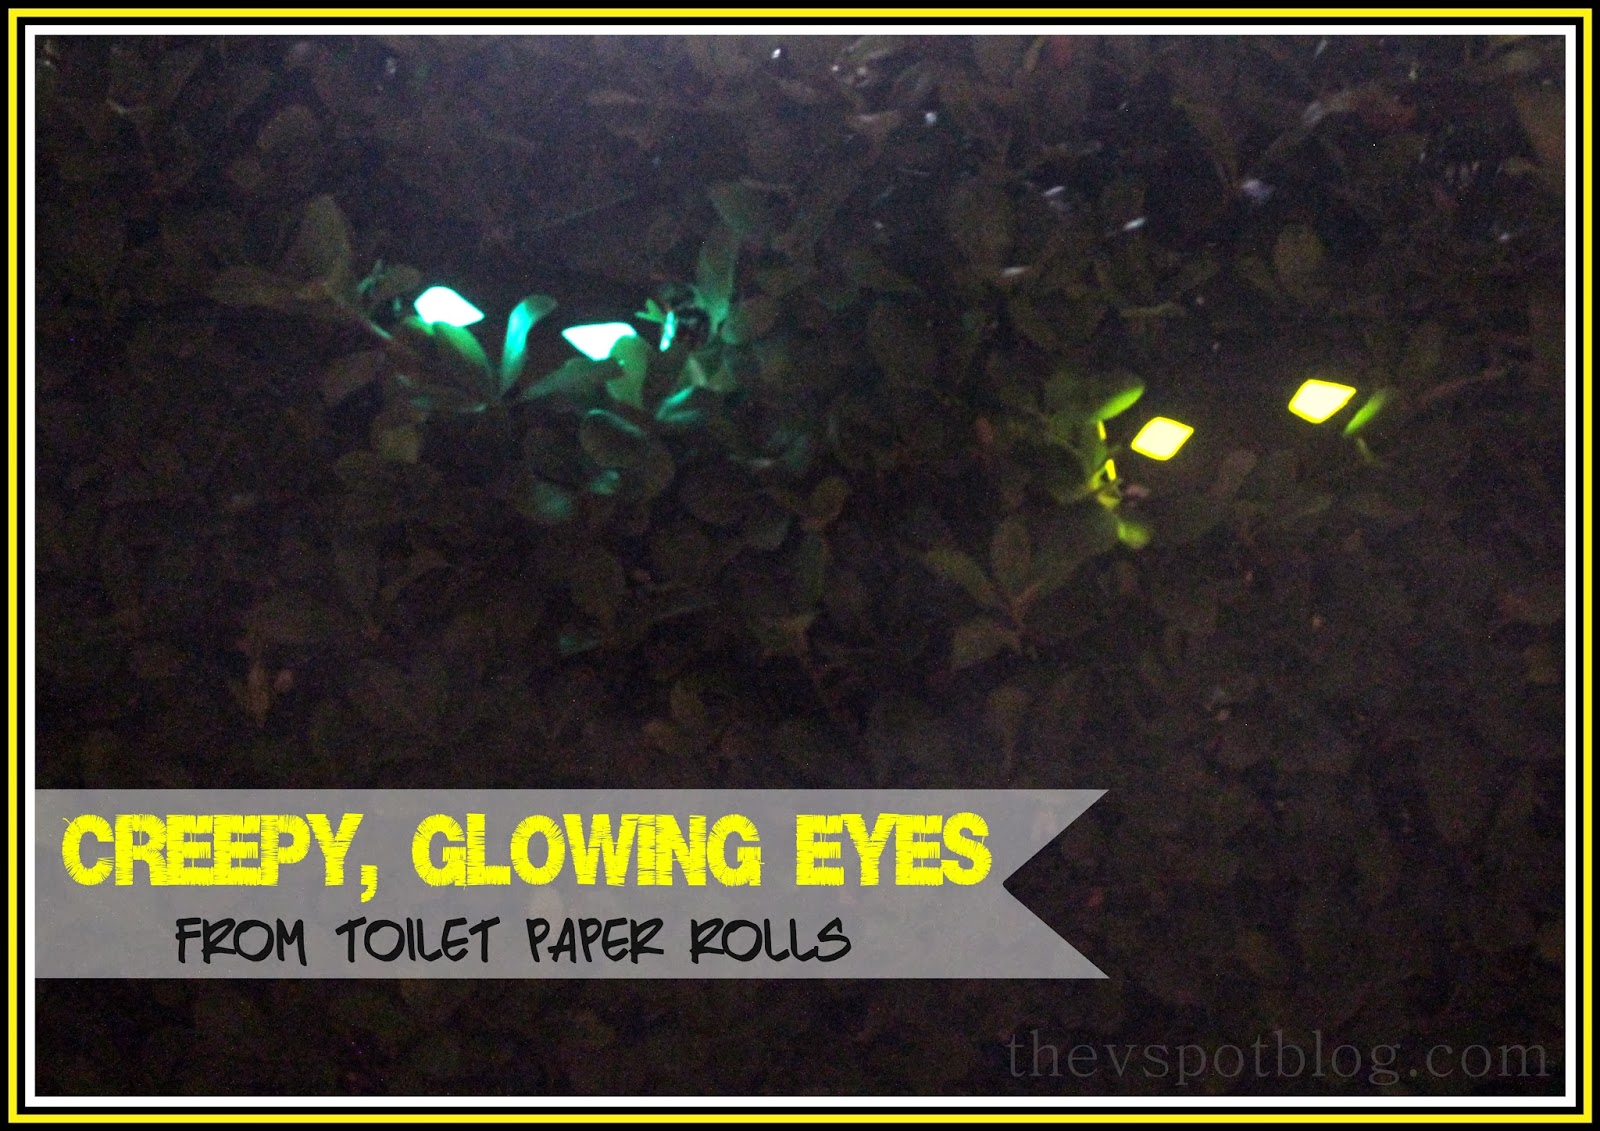 Creepy glowing eyes a 5 minute Halloween decoration